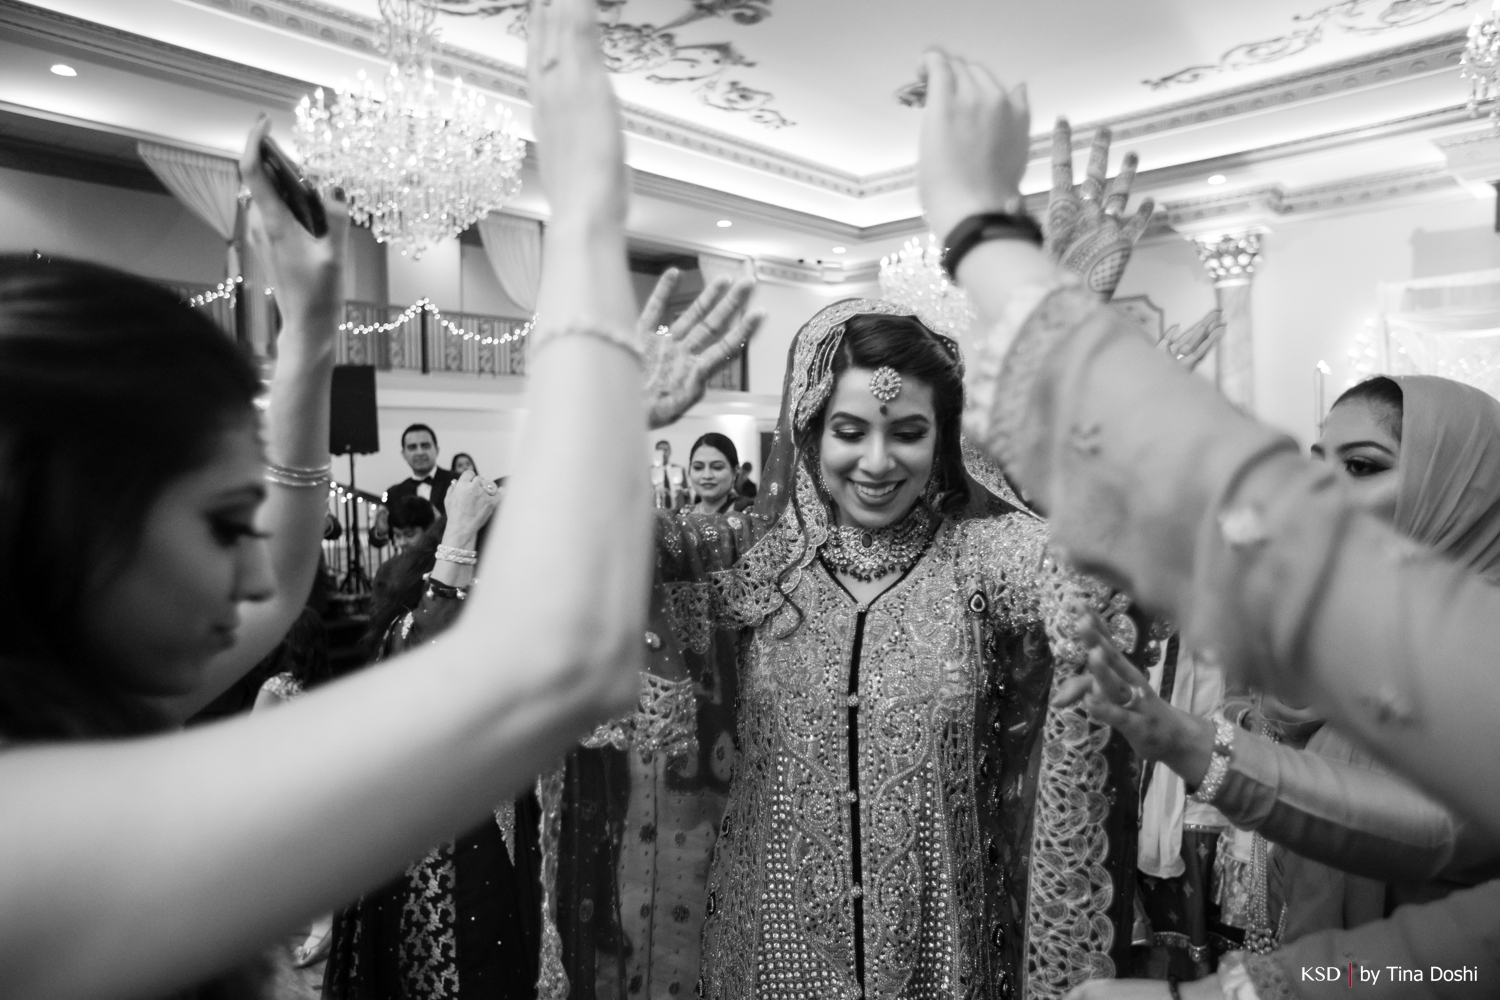 nj_south_asian_wedding_0138